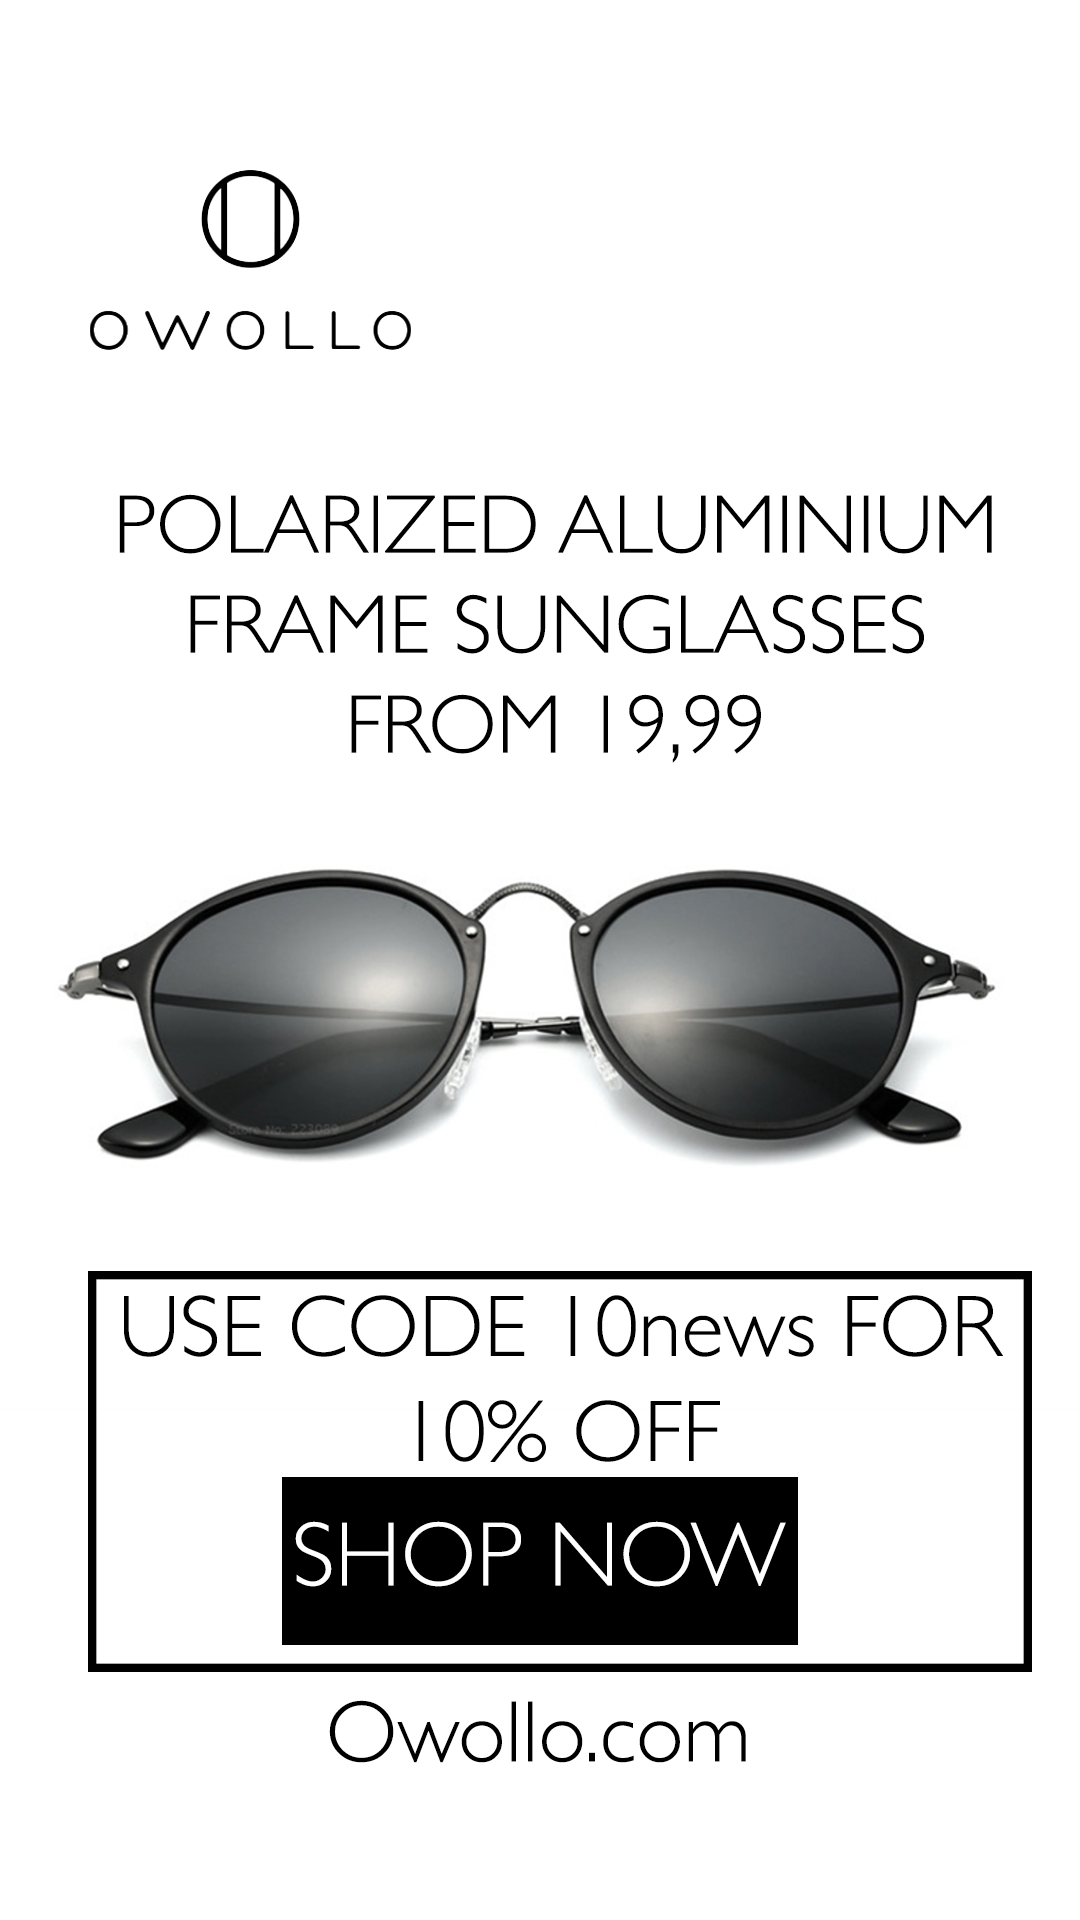 370c571f707 Owollo is a brand of affordable polarized sunglasses